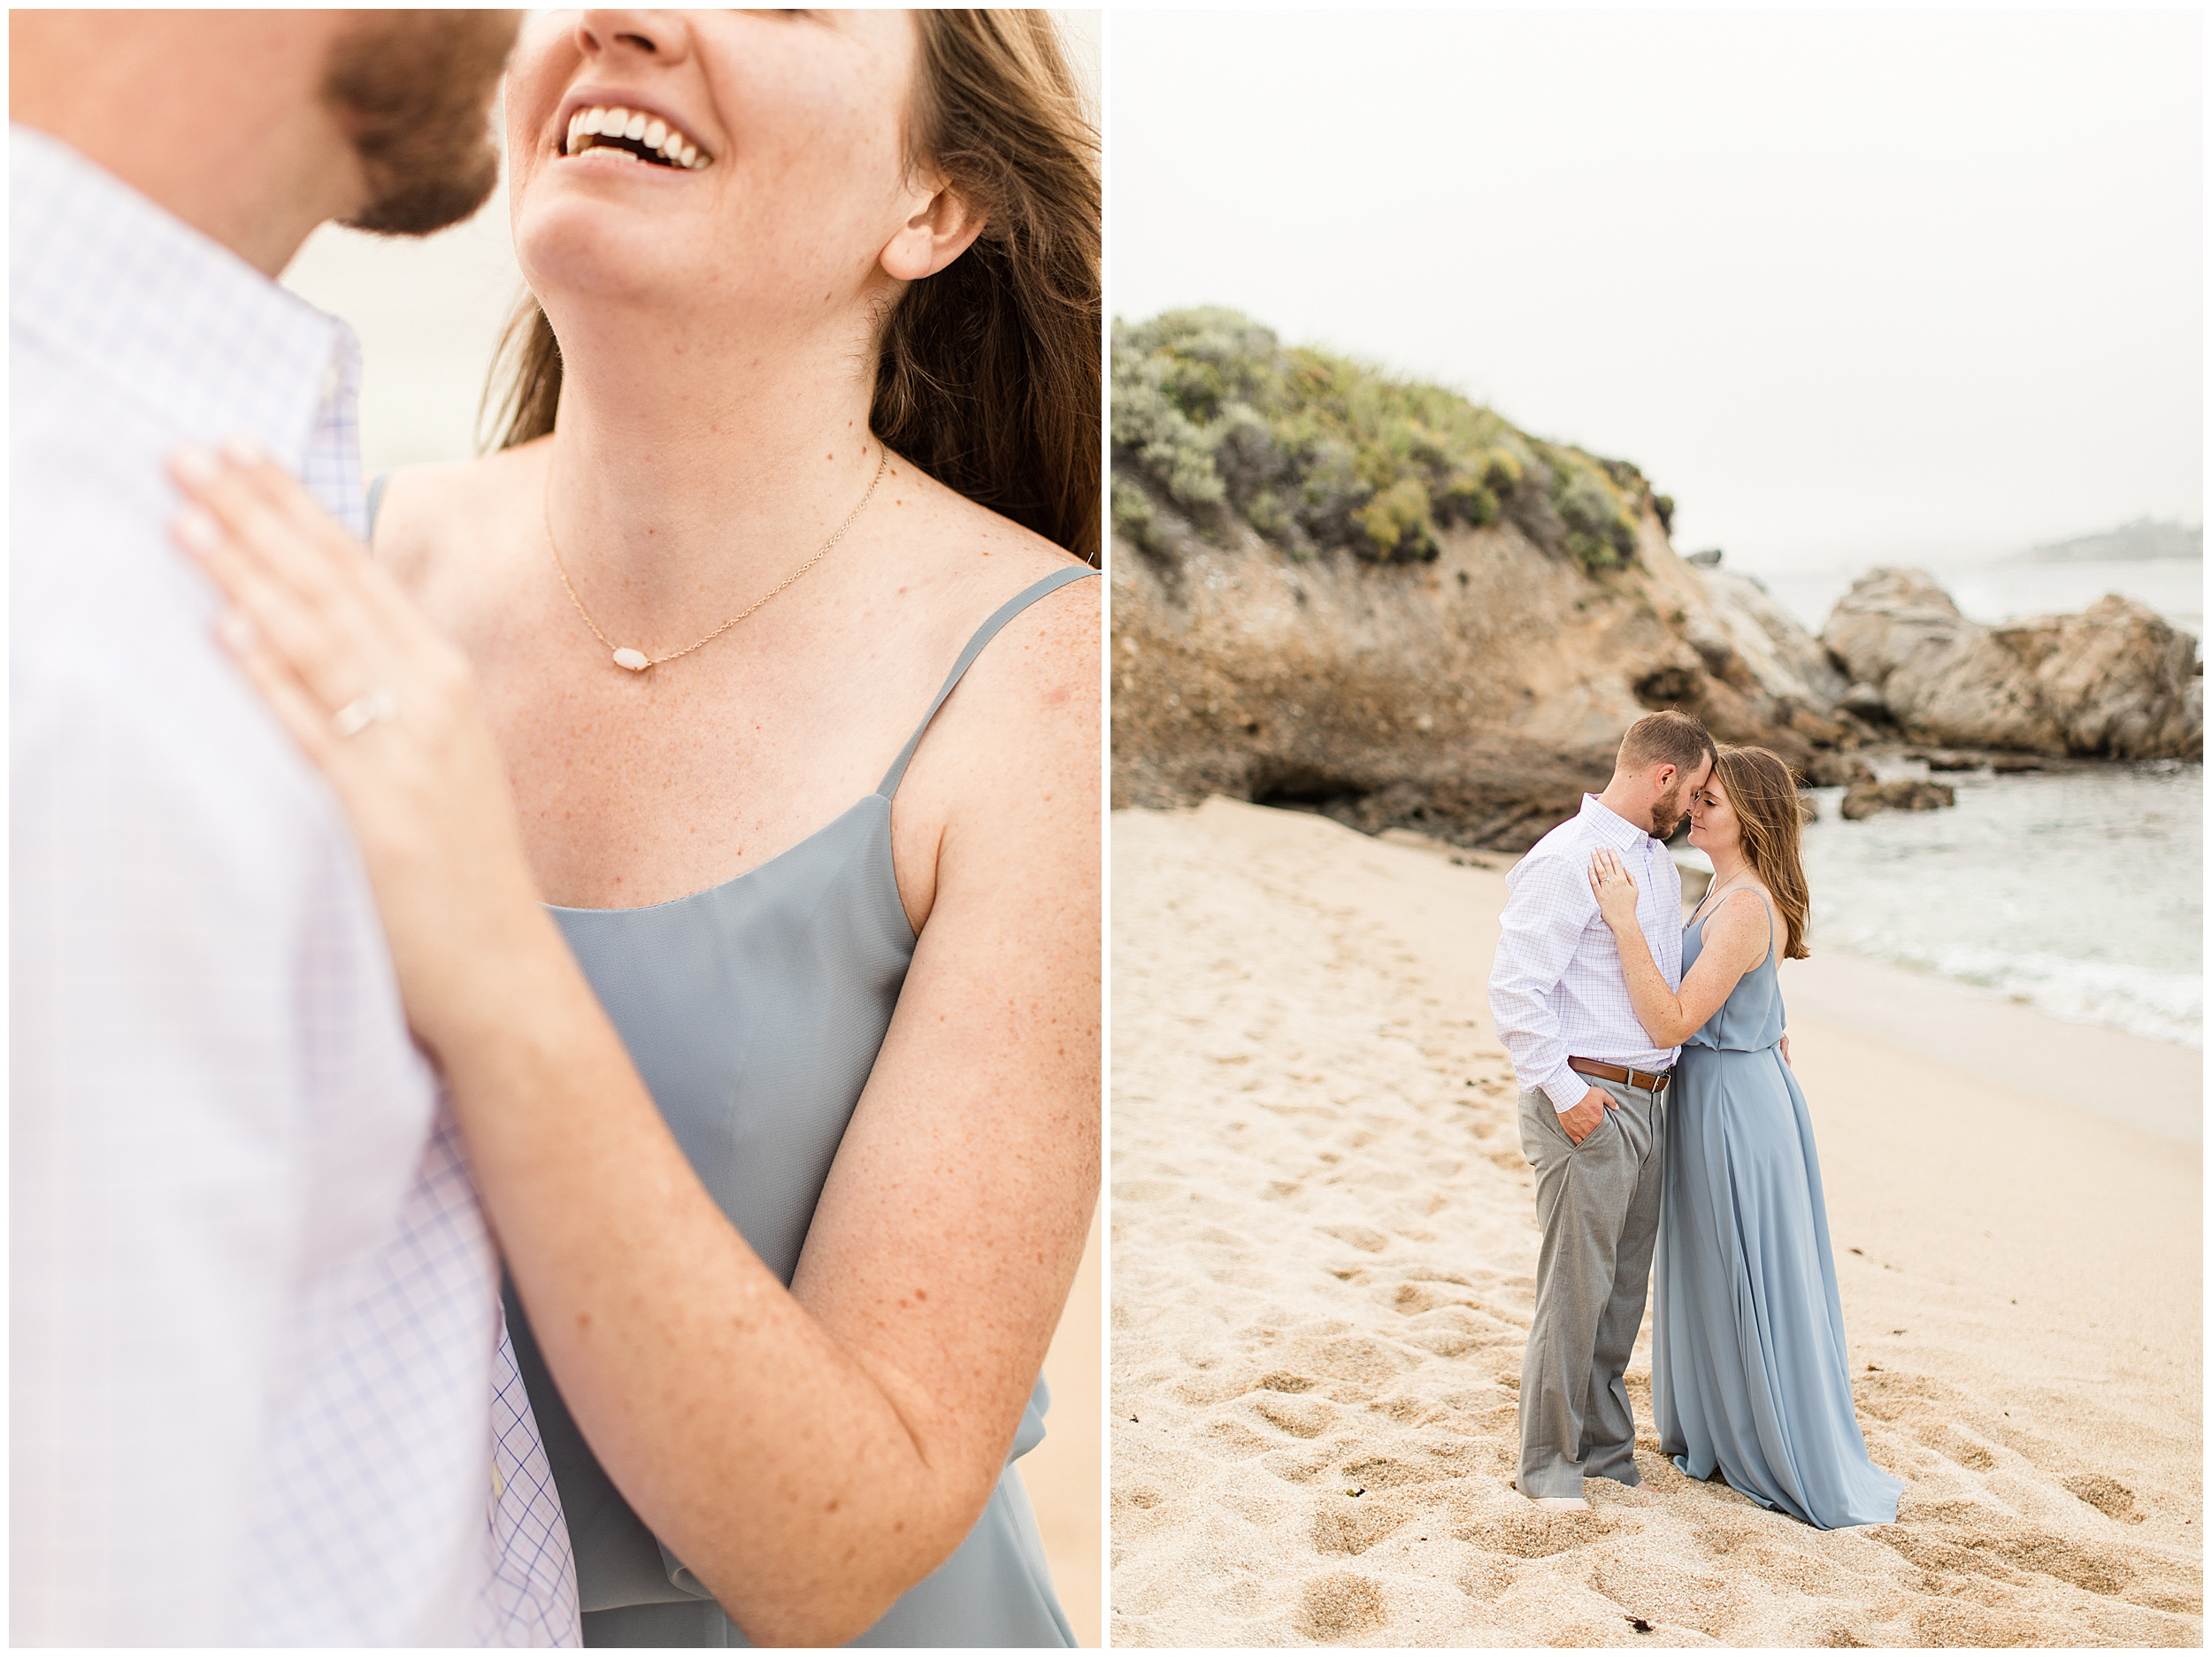 2019 carmel by the sea surprise proposal engagement session wedding photographer angela sue photography_0031.jpg